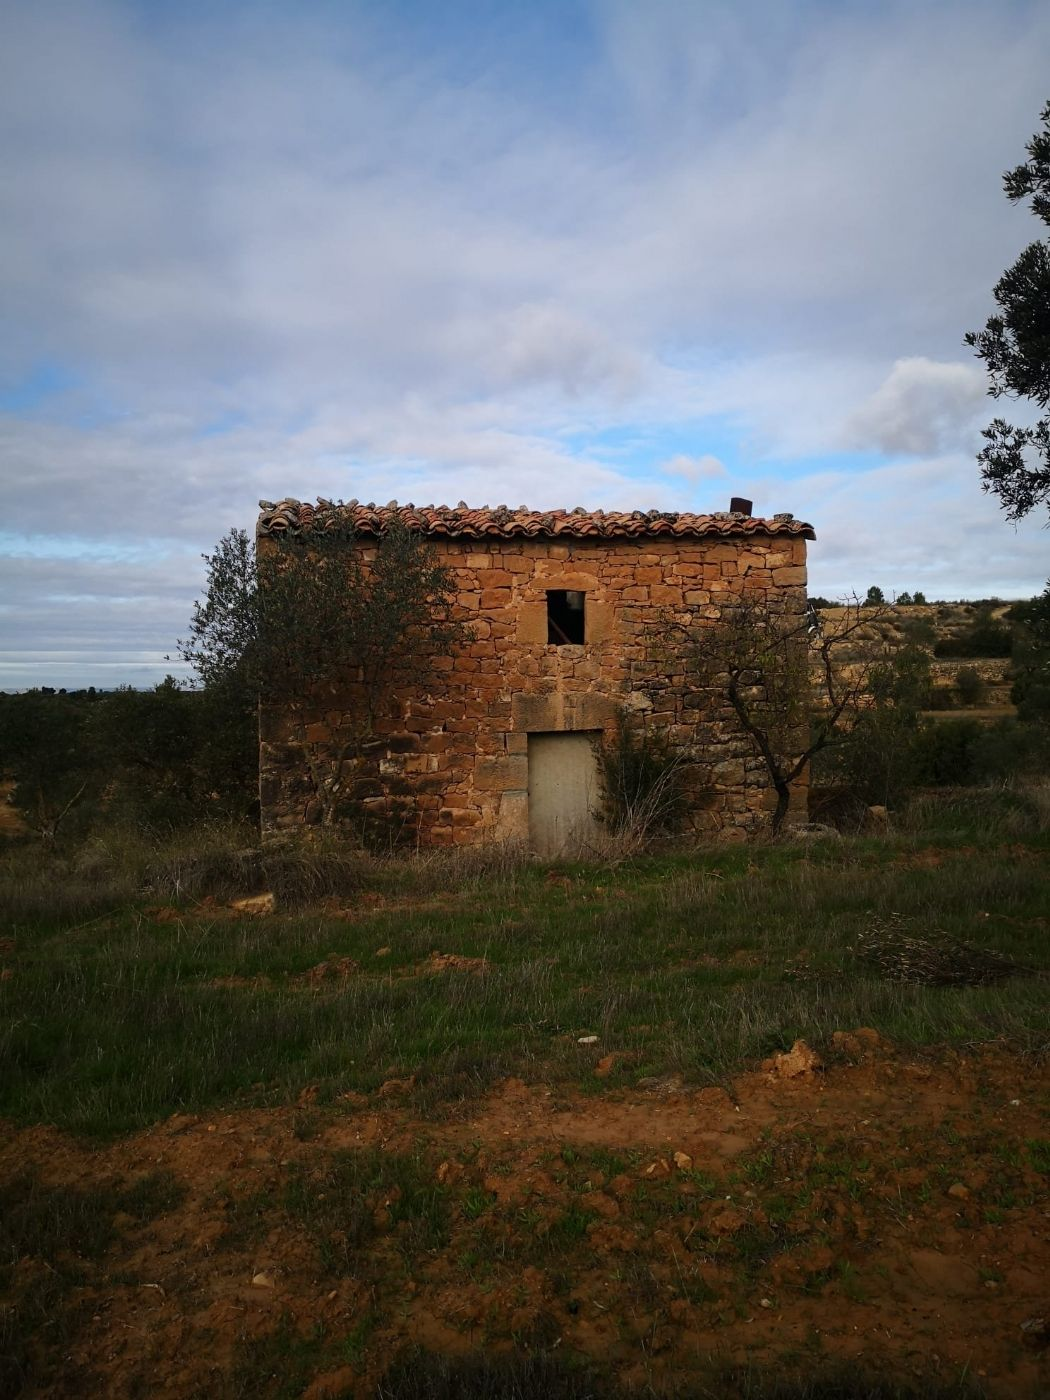 Rural plot in Carrer lleida, s/n. Terreno de 5,5 hectareas de olivos